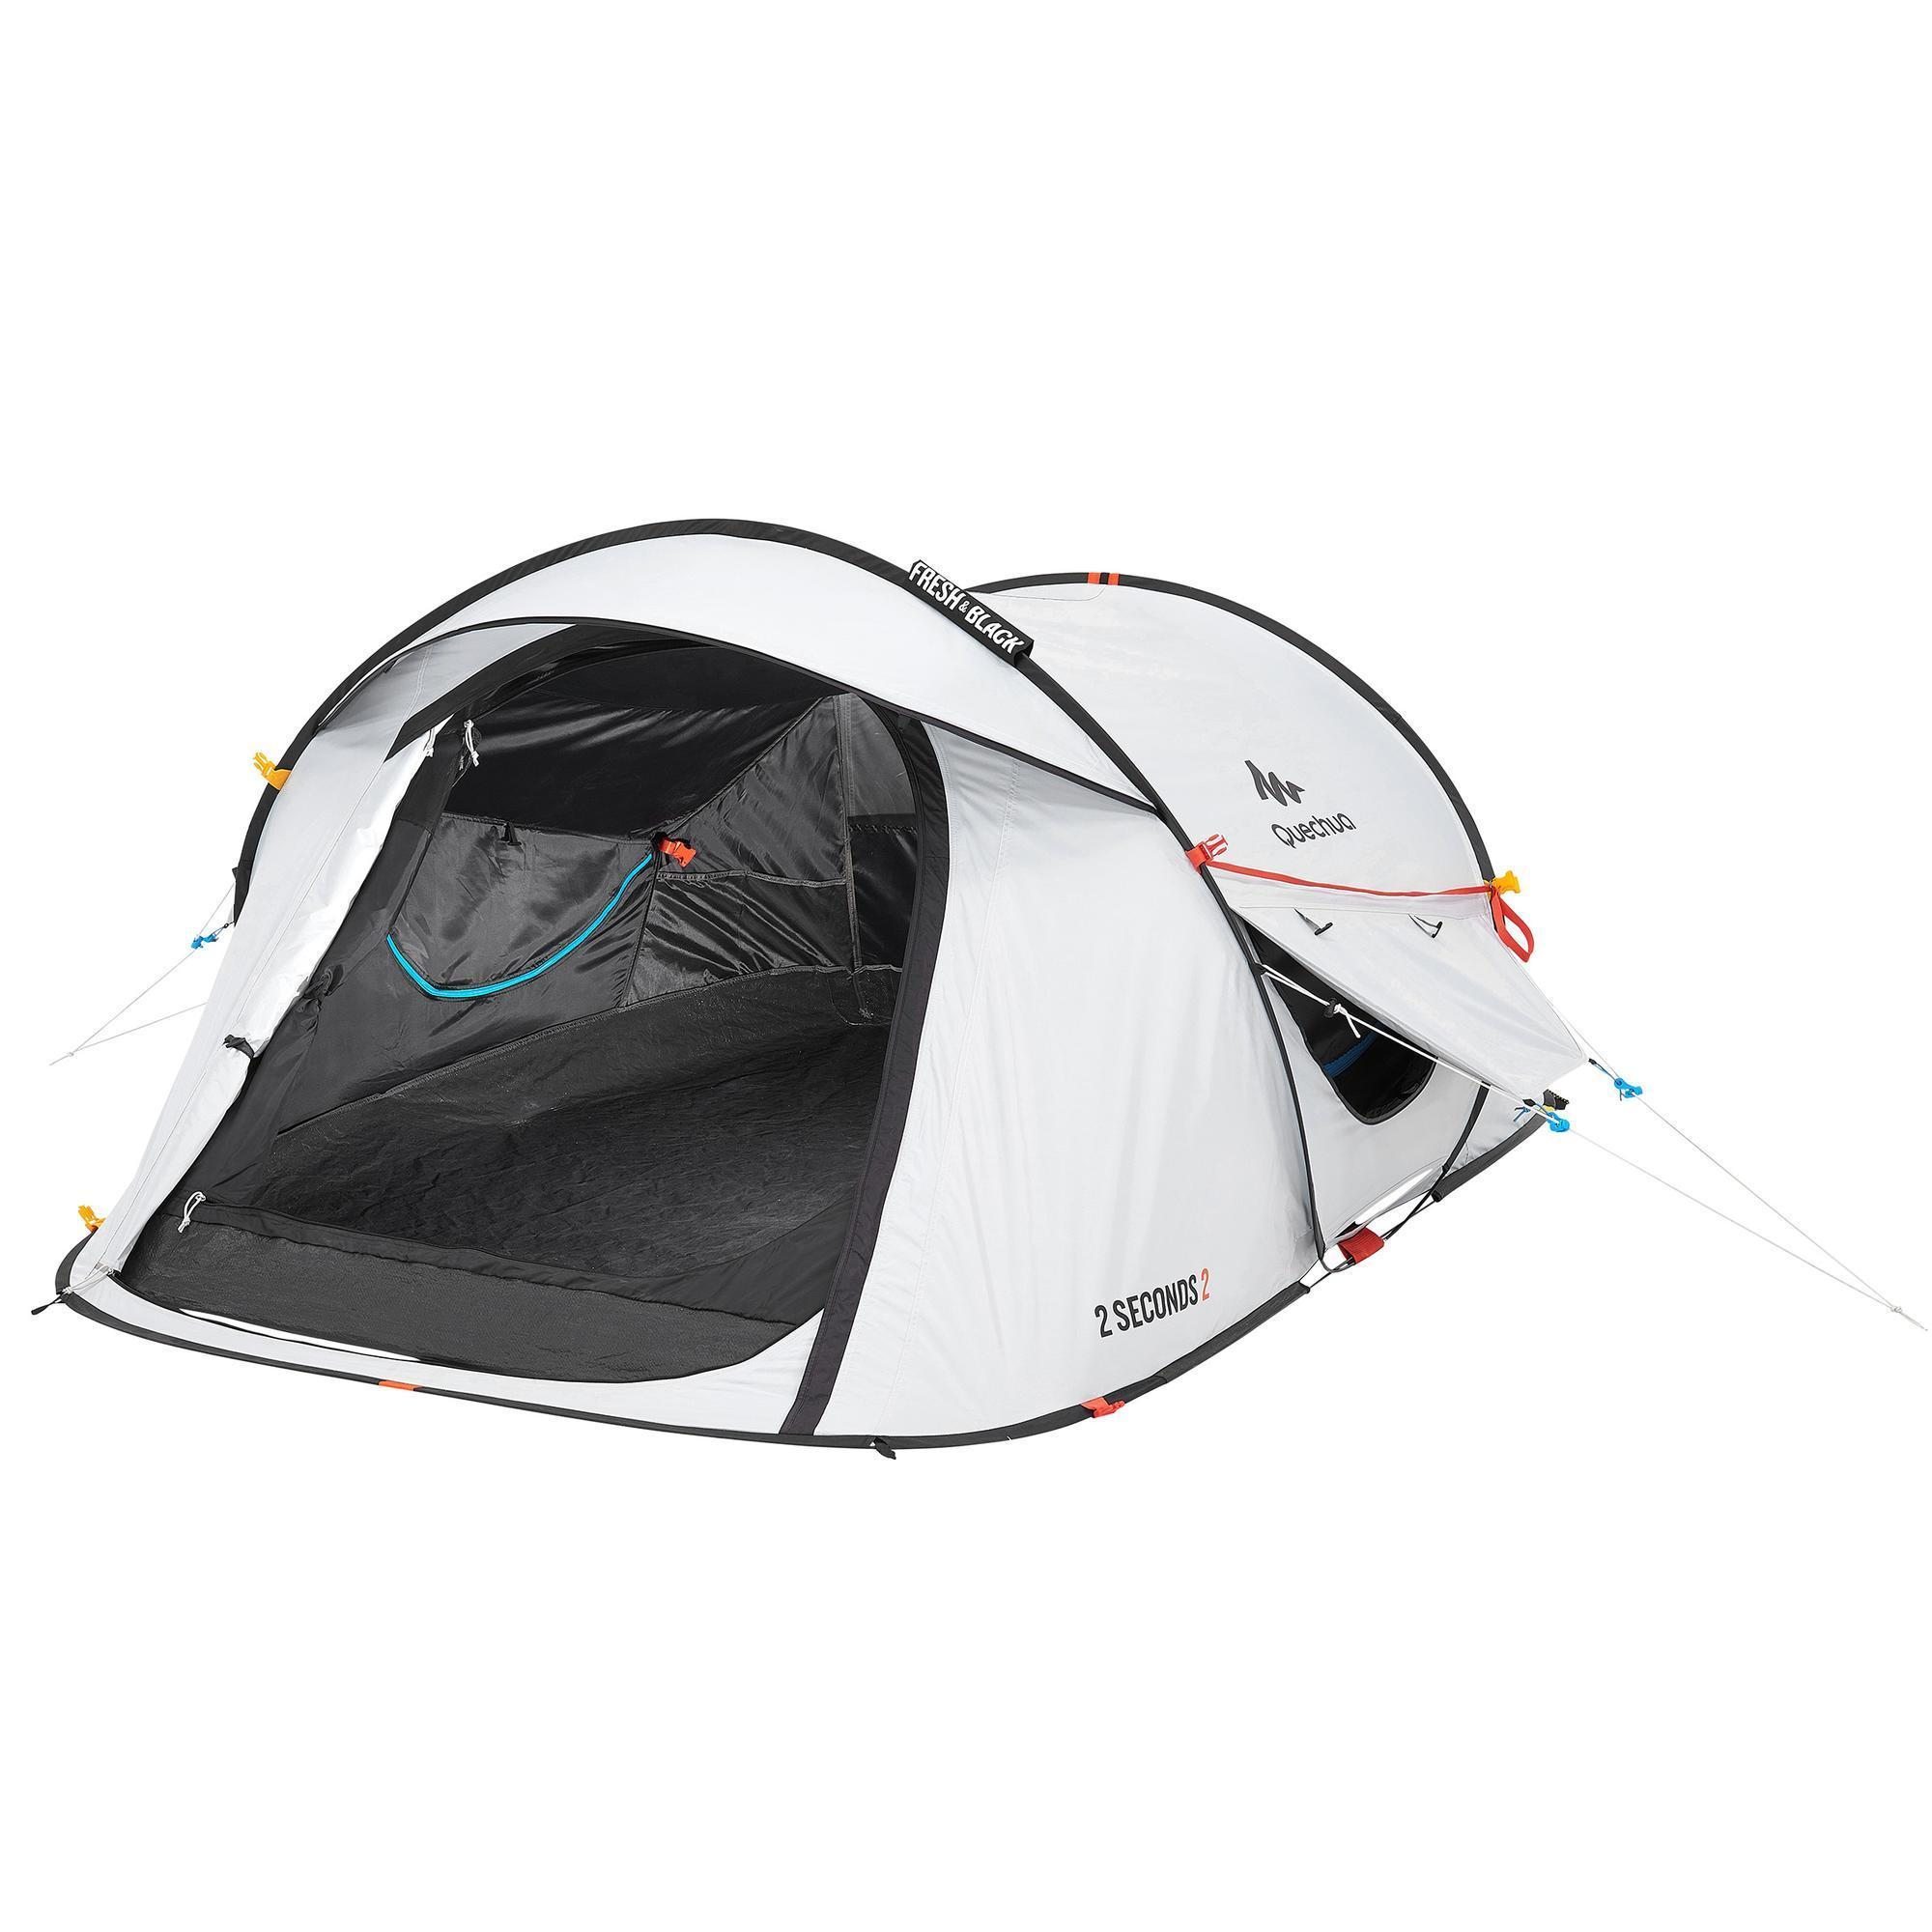 2 Seconds Freshu0026Black 2 Pers  sc 1 st  Quechua : pop up two man tent - memphite.com